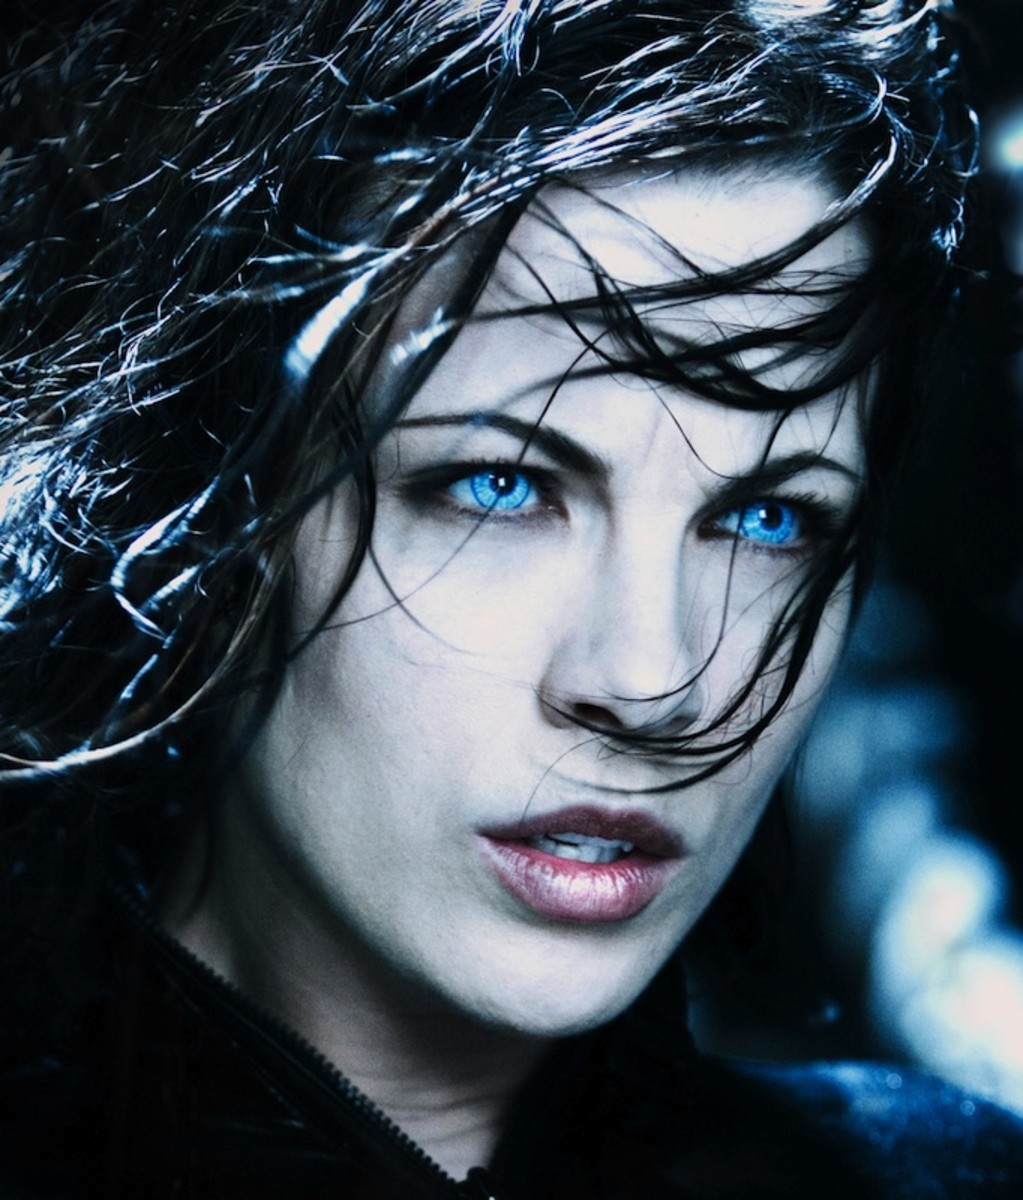 Pale skin and pale blue eyes are the hallmarks of these vampires